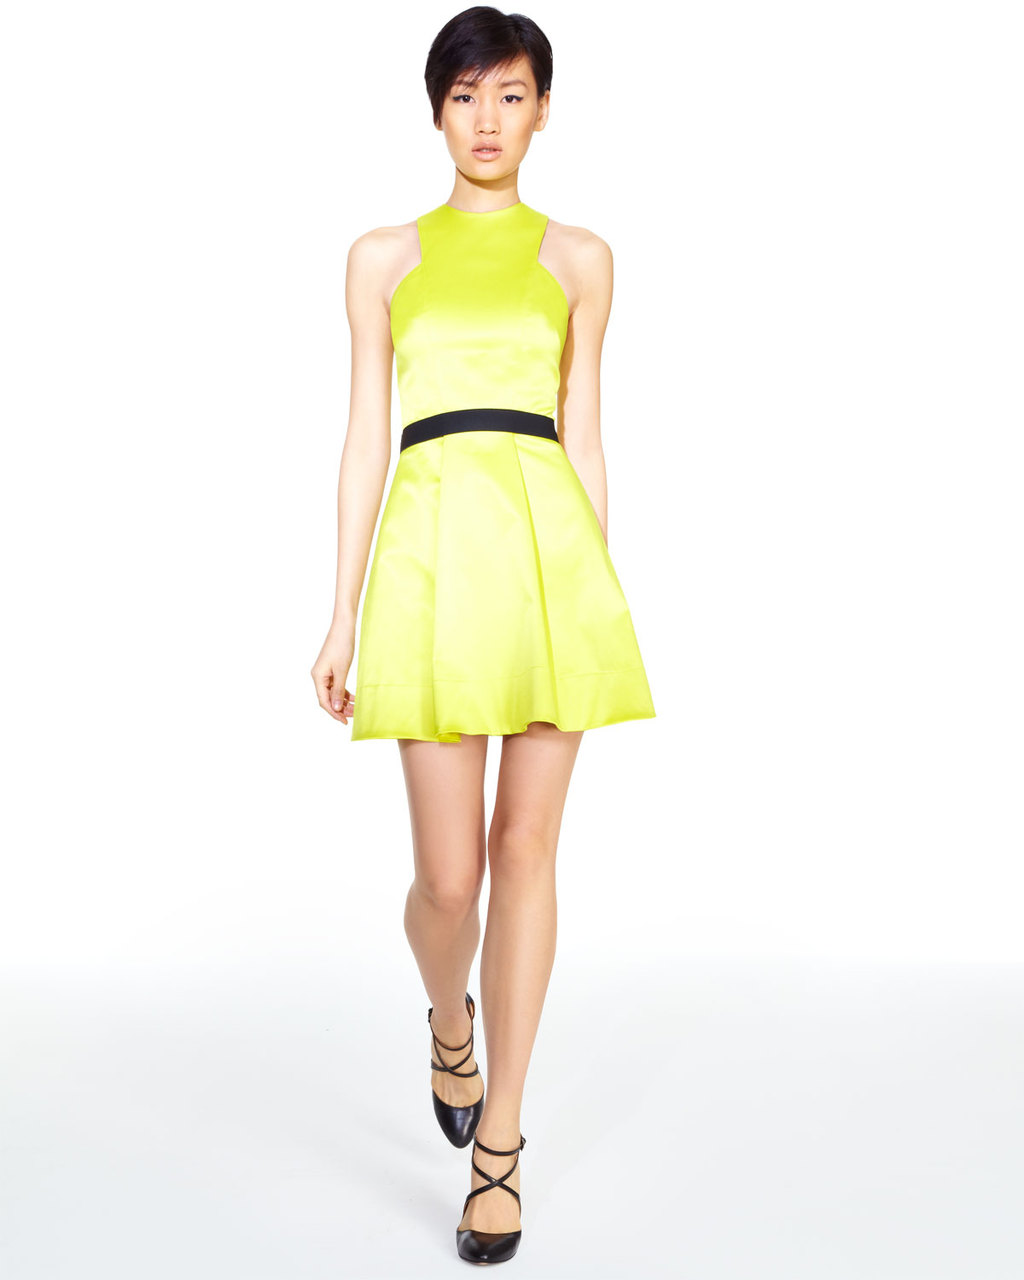 electric-yellow-bridesmaid-dress-with-black-sash.full.jpg